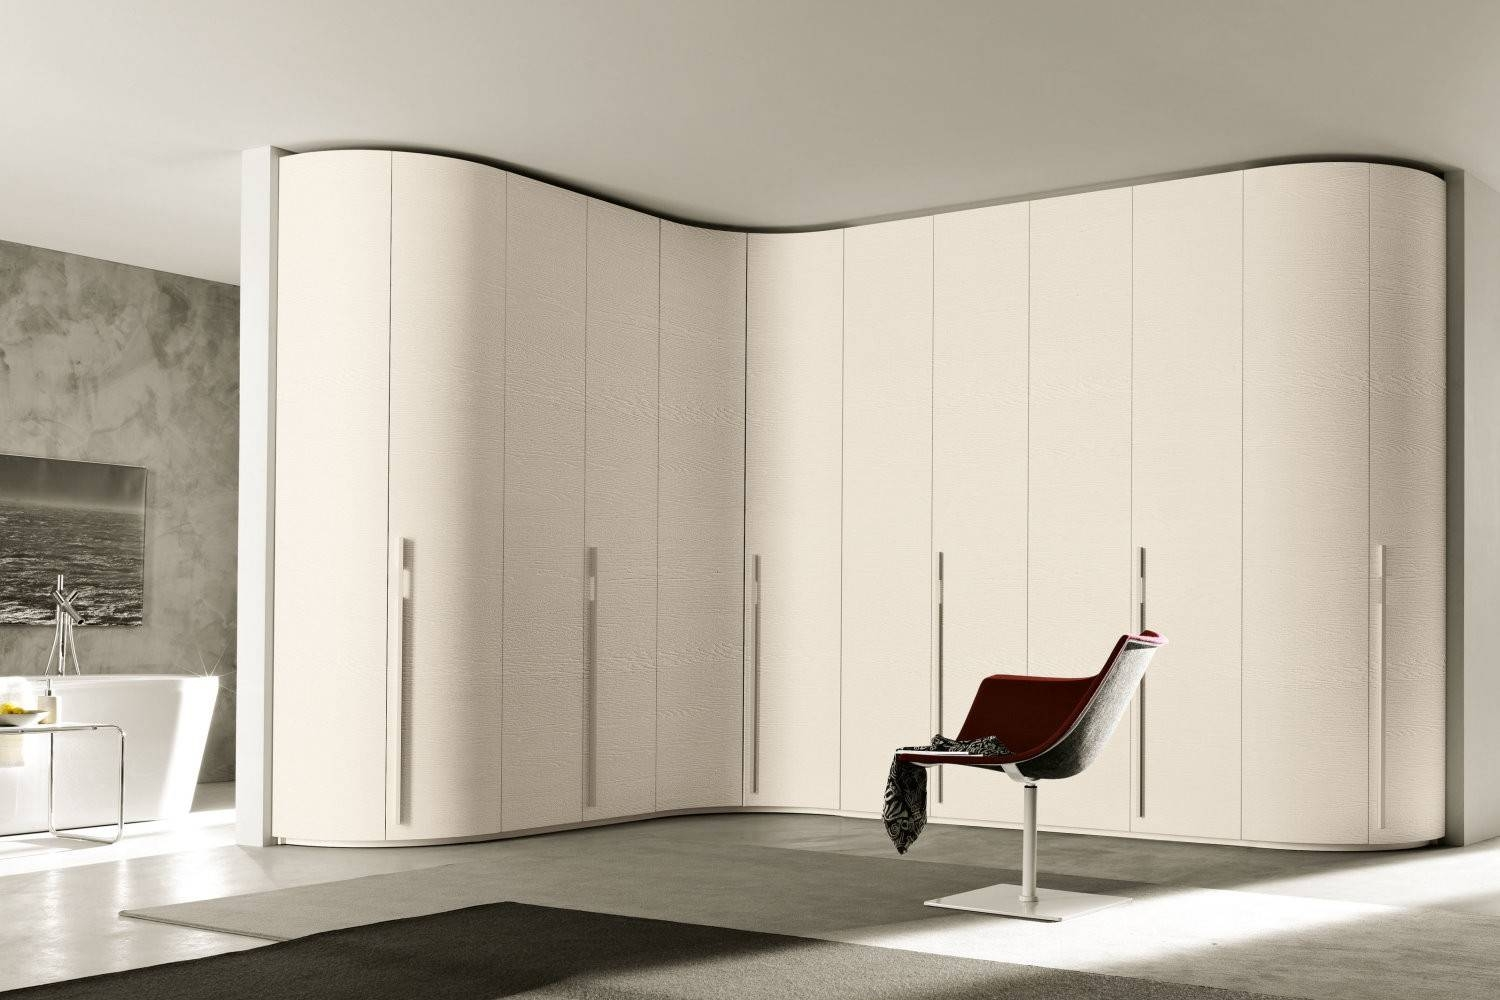 Hinged Wardrobe With Curved Doors - Napol Furniture with regard to Curved Wardrobe Doors (Image & Top 30 of Curved Wardrobe Doors Pezcame.Com